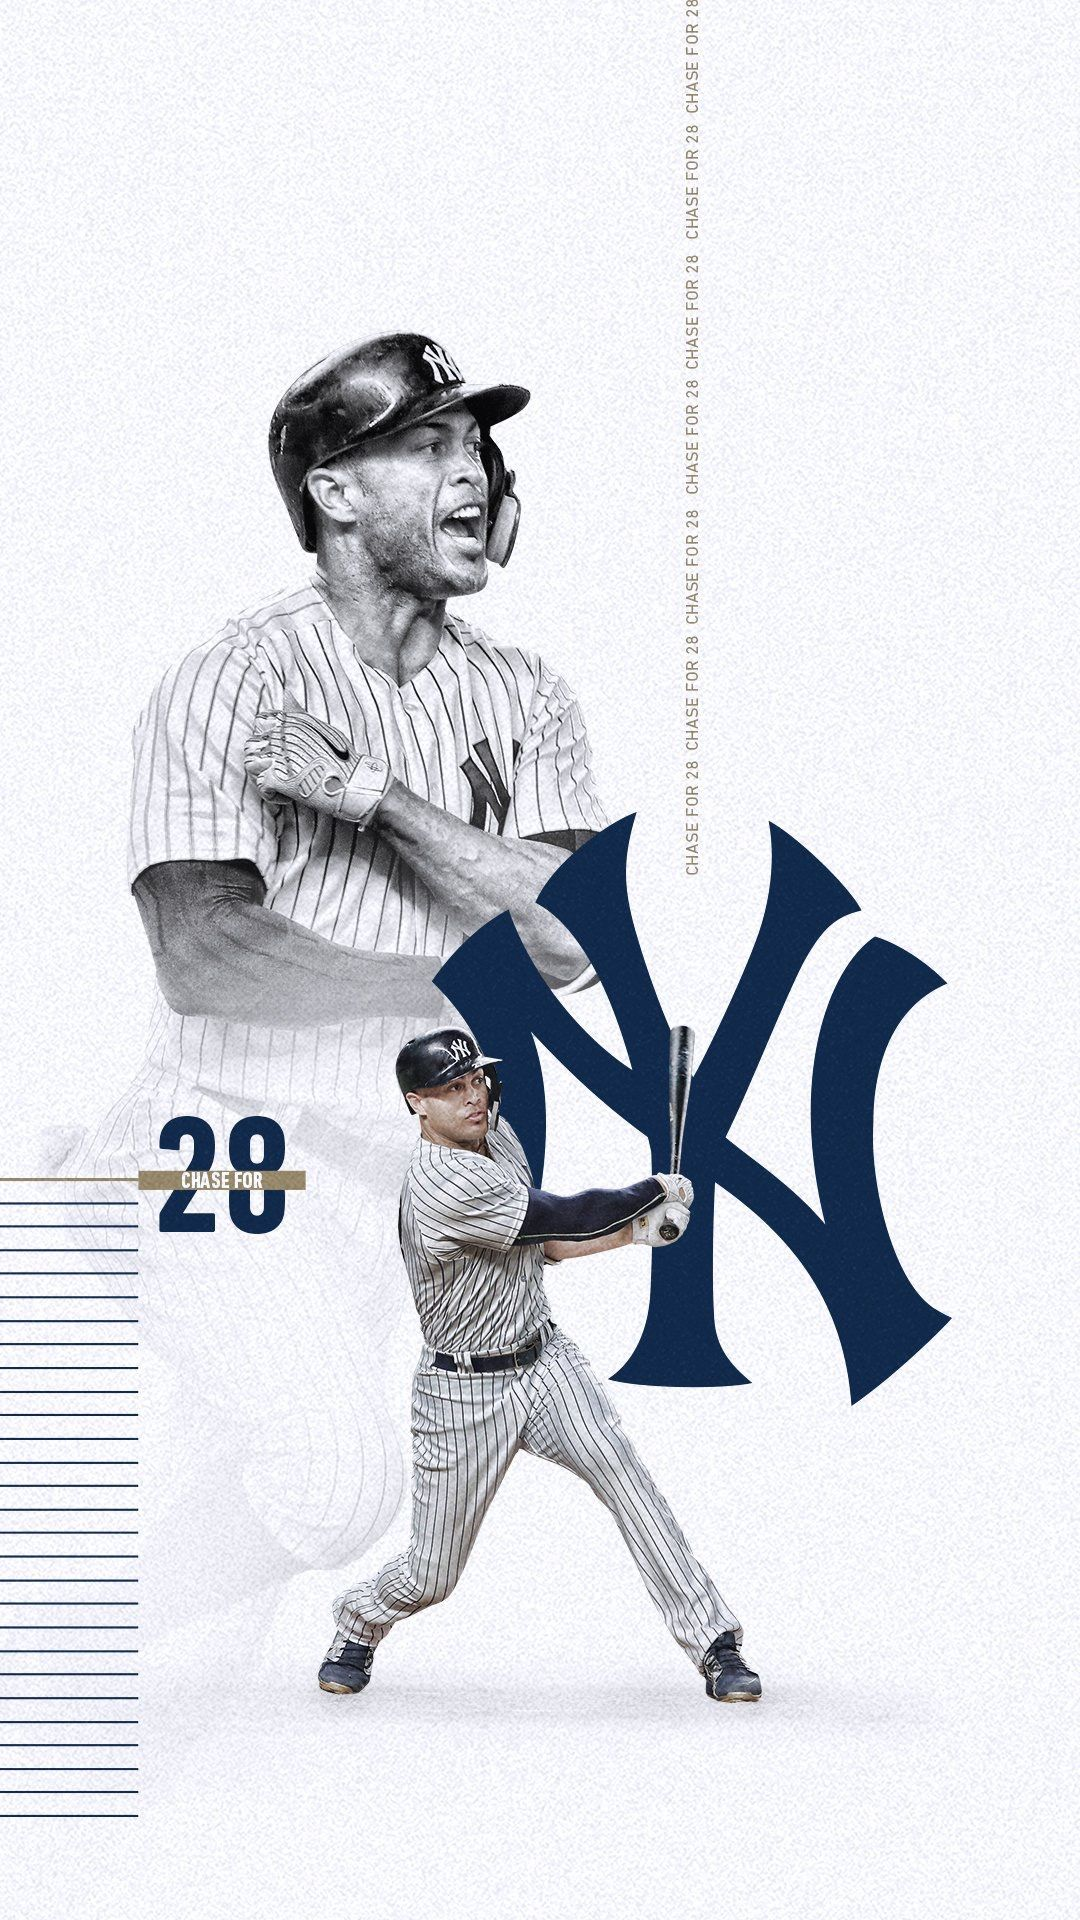 Giancarlo Stanton Ny Yankees Poster New York Yankees Baseball New York Yankees